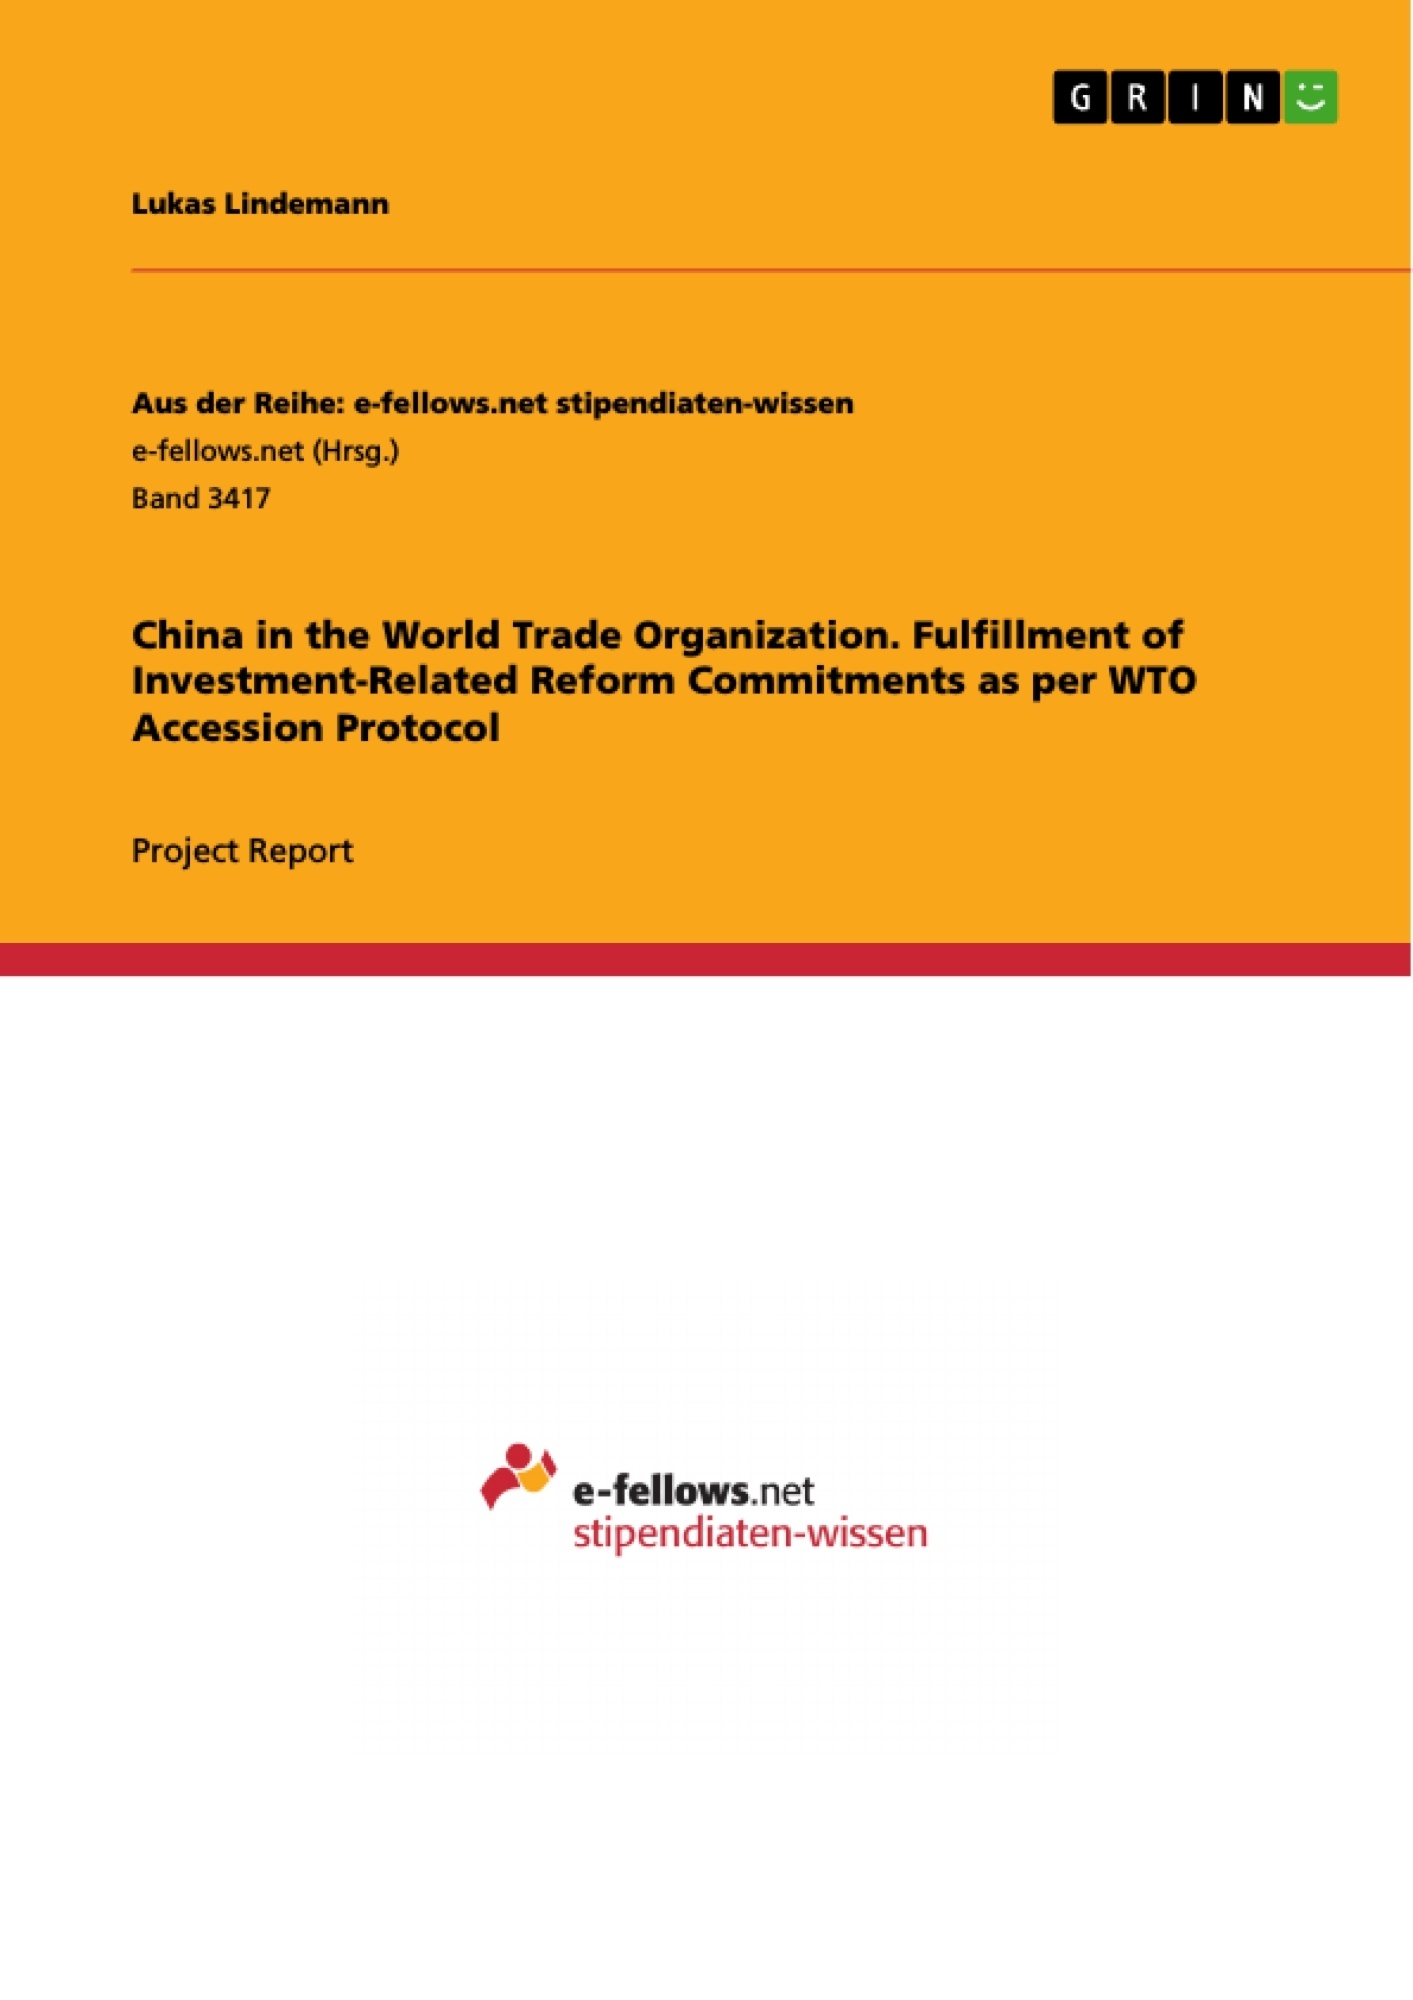 Title: China in the World Trade Organization. Fulfillment of Investment-Related Reform Commitments as per WTO Accession Protocol